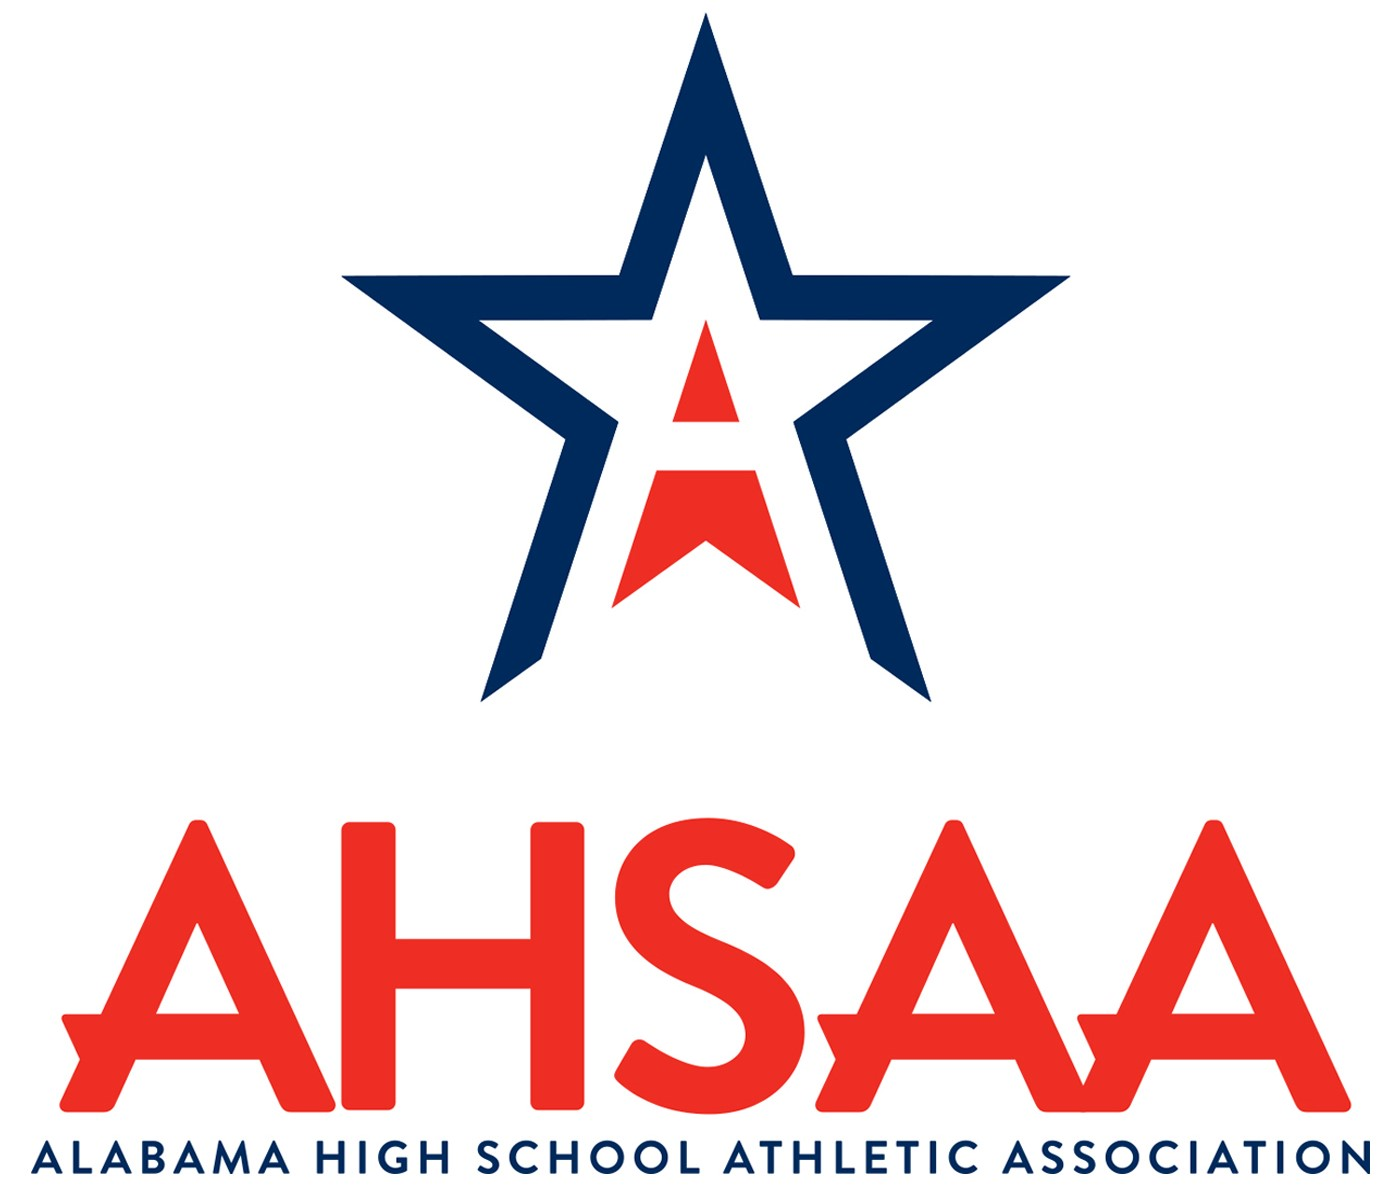 AHSAA Central Board Approves and Legislative Council Ratifies a Record 11 Proposals Thursday